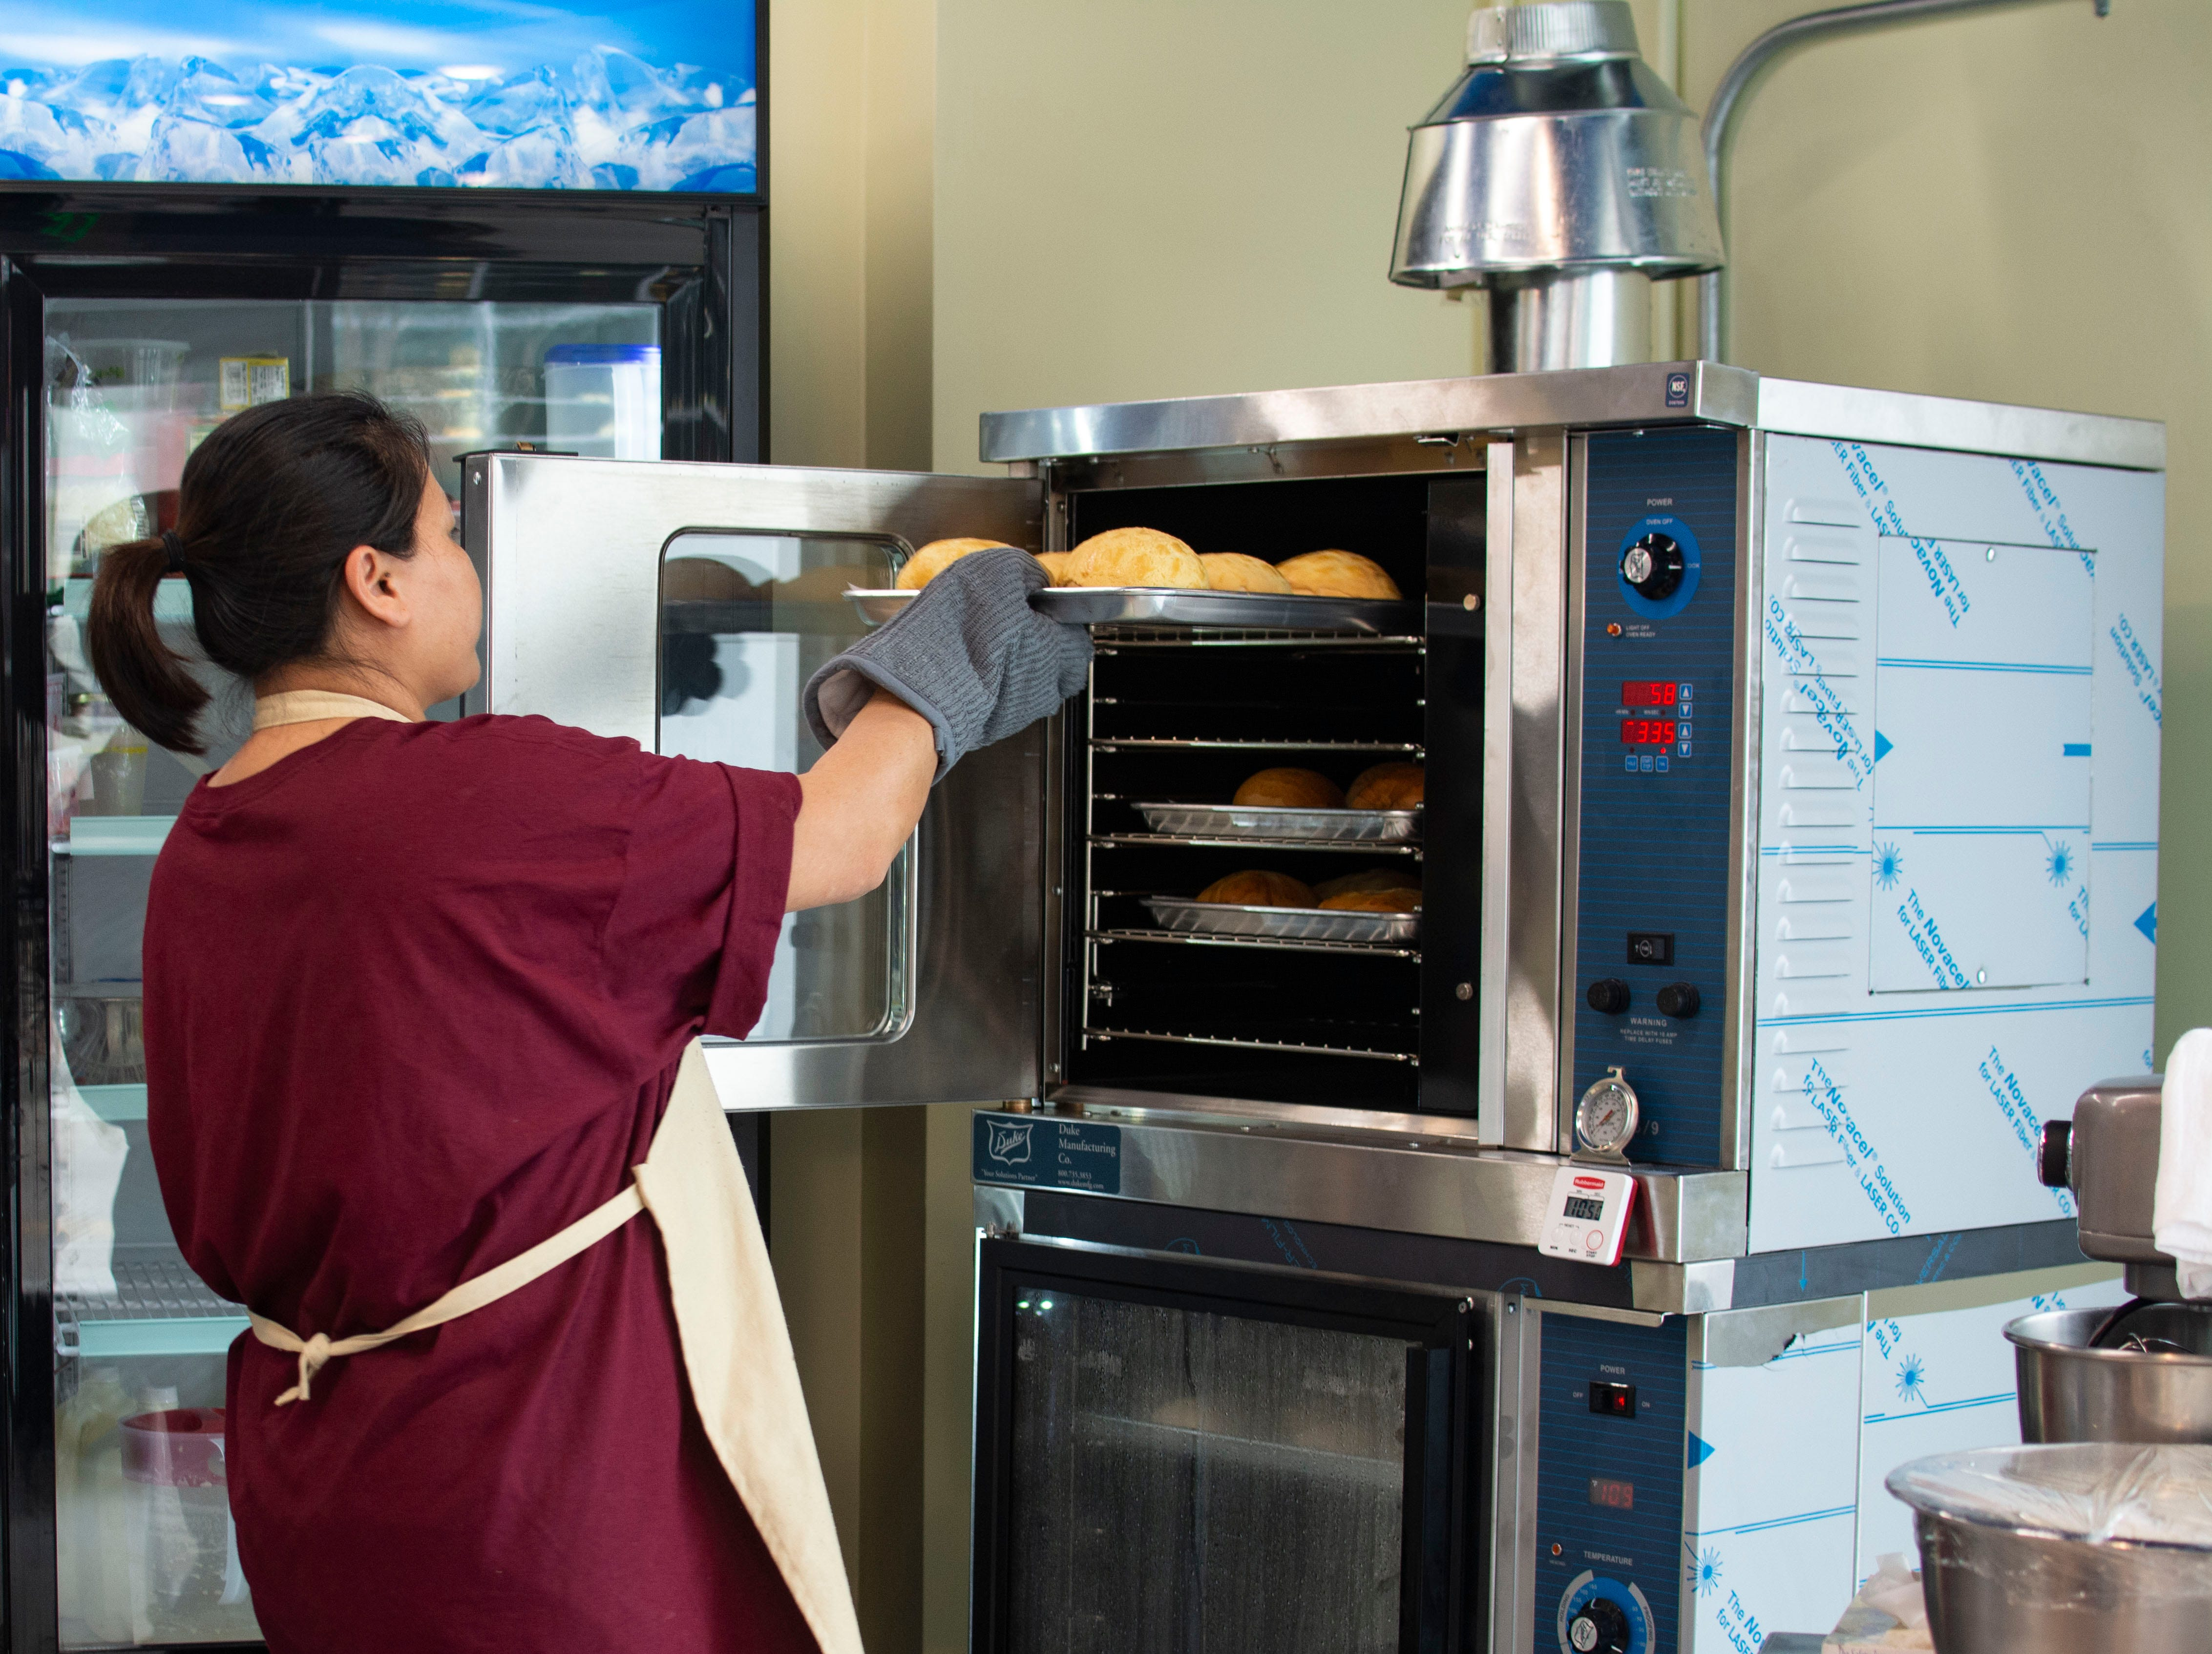 Lai Na Wong bakes fresh buns to keep up with the stream of customers on April 12, 2019